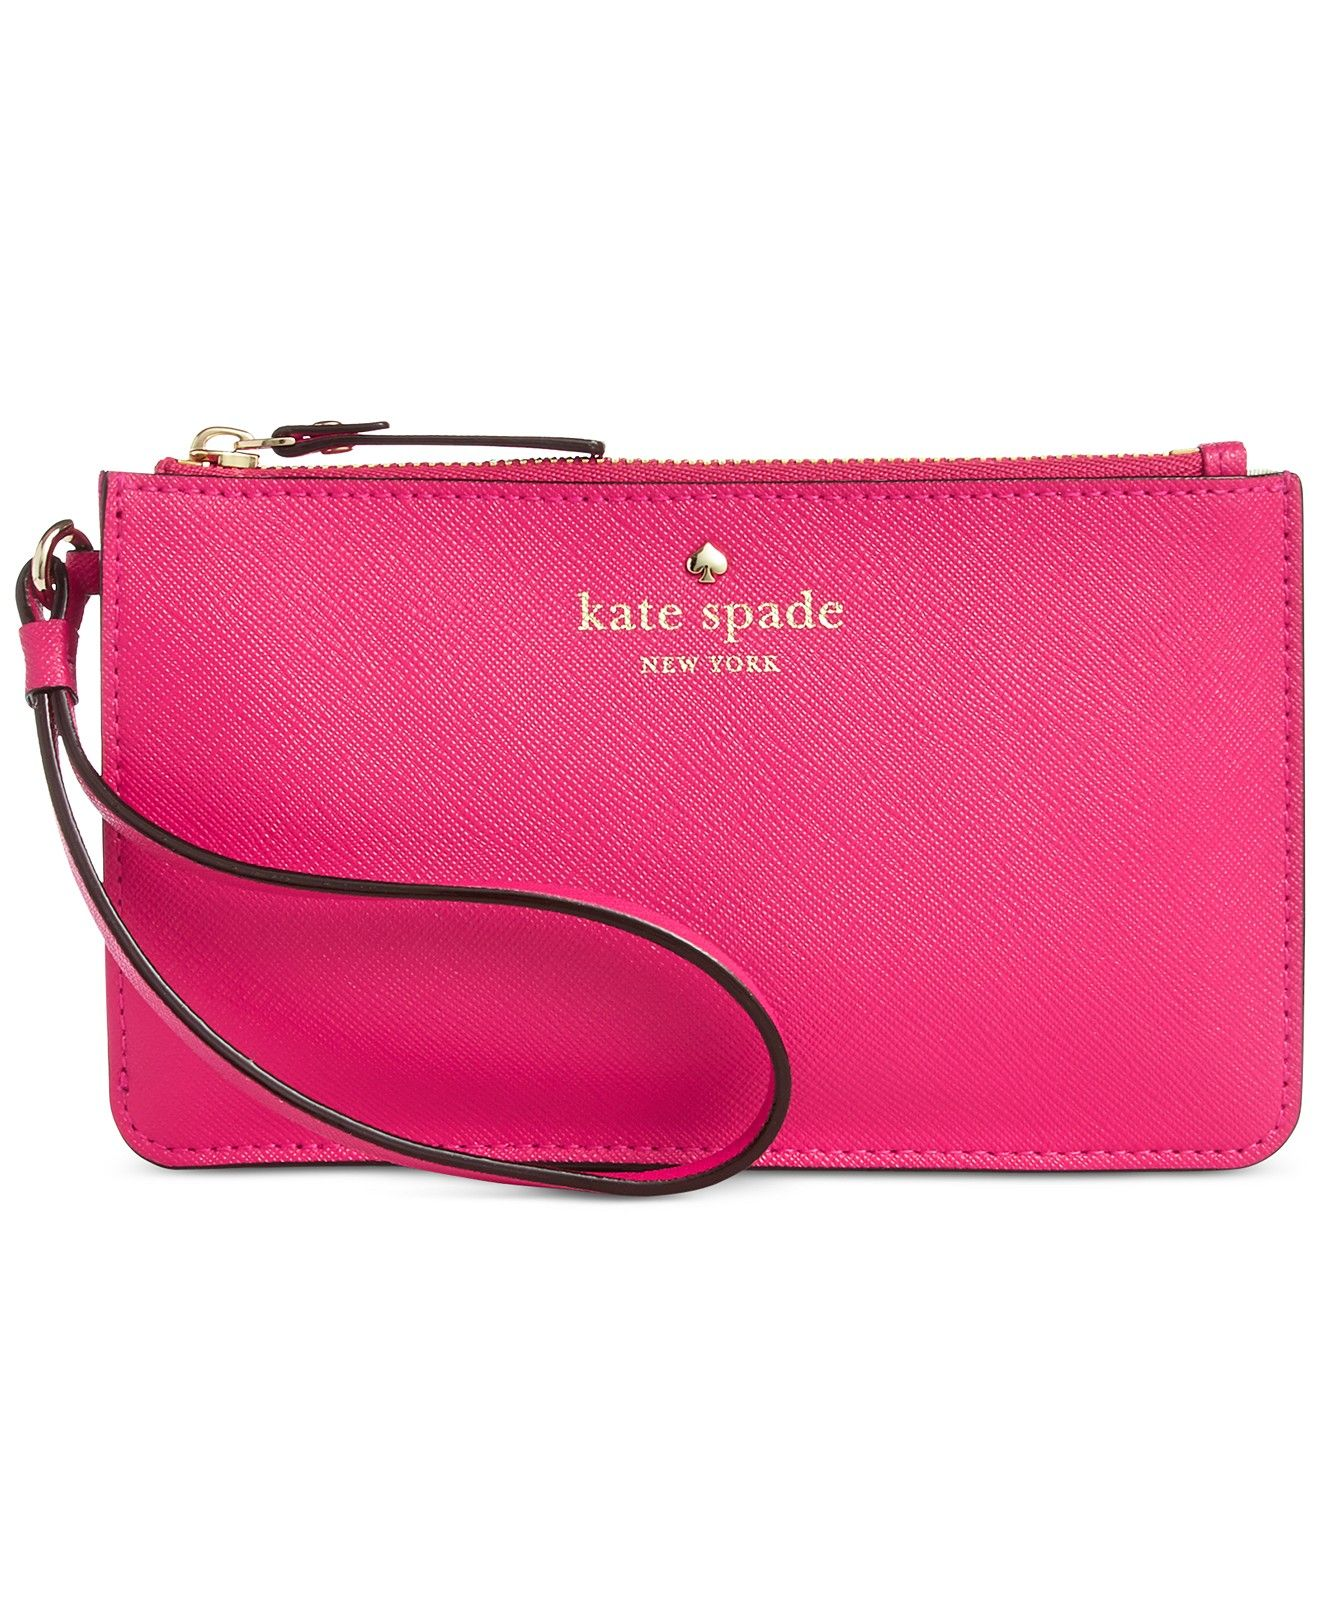 ad63132246ed kate spade new york Cedar Street Slim Bee Wristlet - Handbags   Accessories  - Macy s